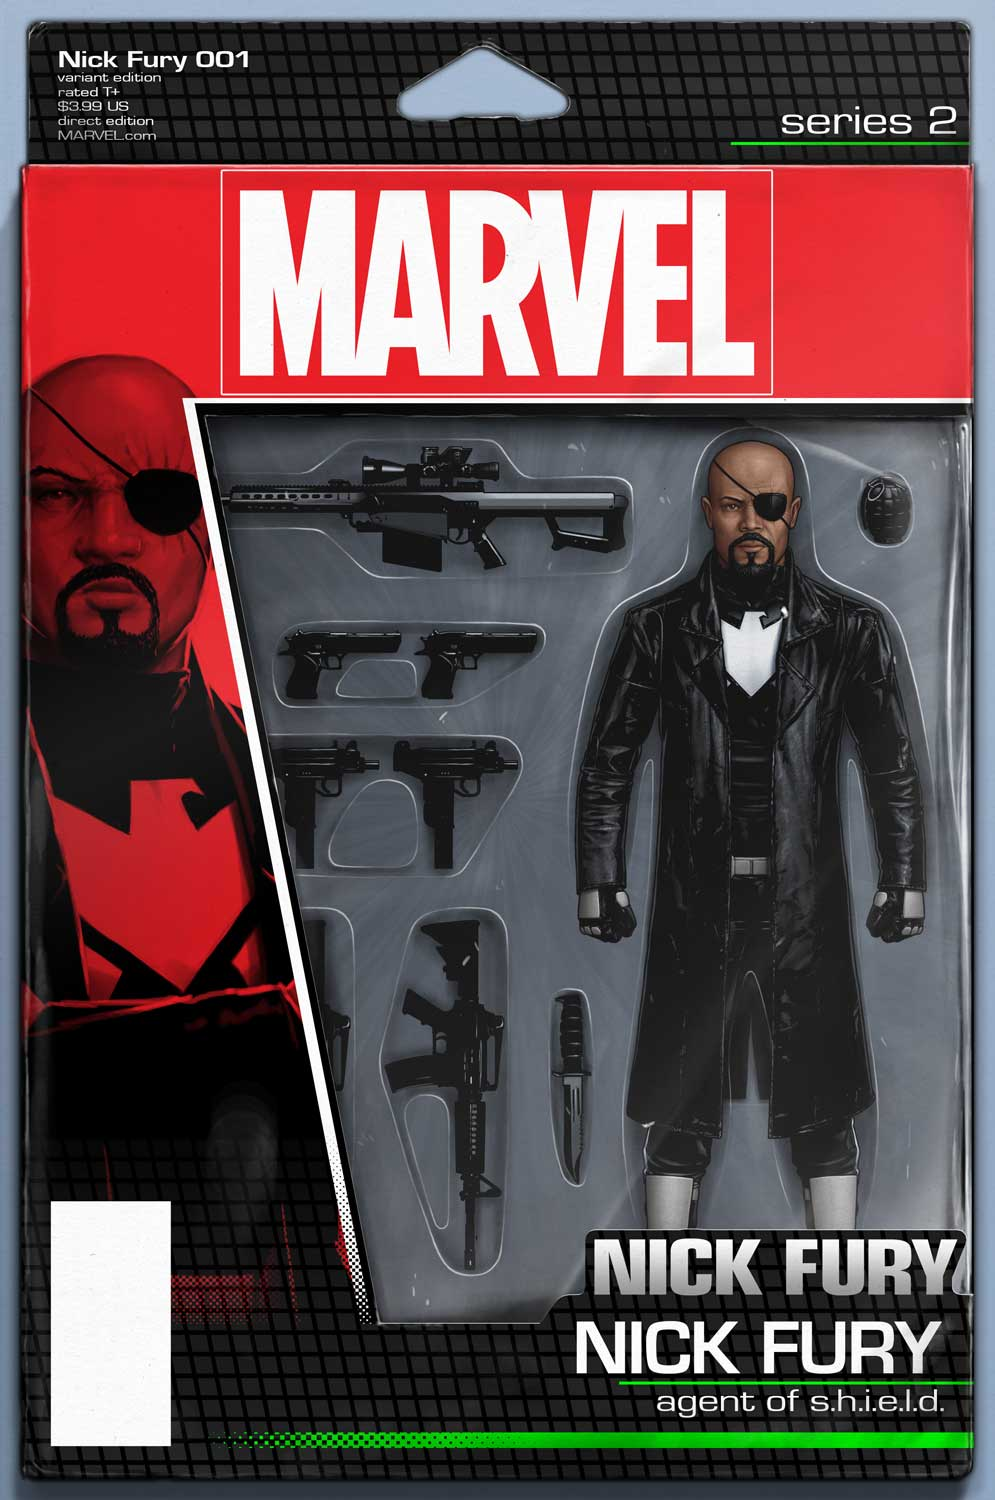 Nick_Fury_1_Christopher_Action_Figure_Variant